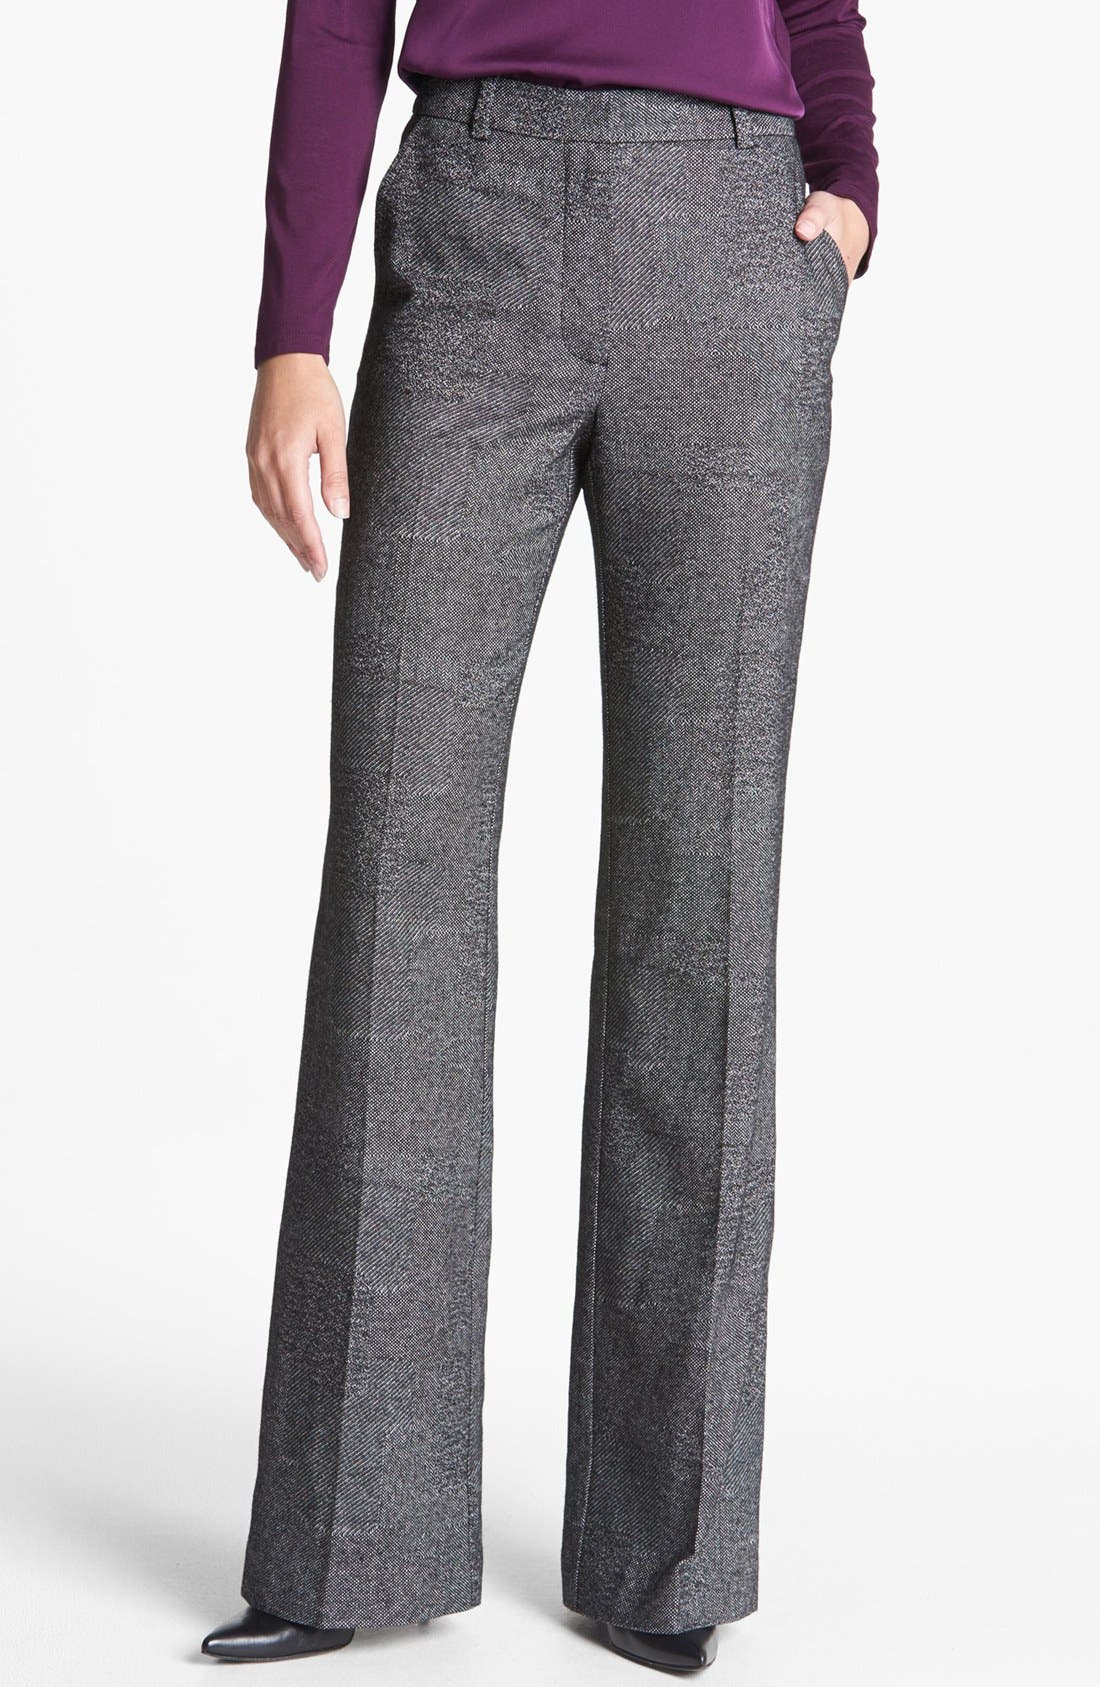 Alternate Image 1 Selected - Trina Turk 'Approach' Cotton Blend Pants